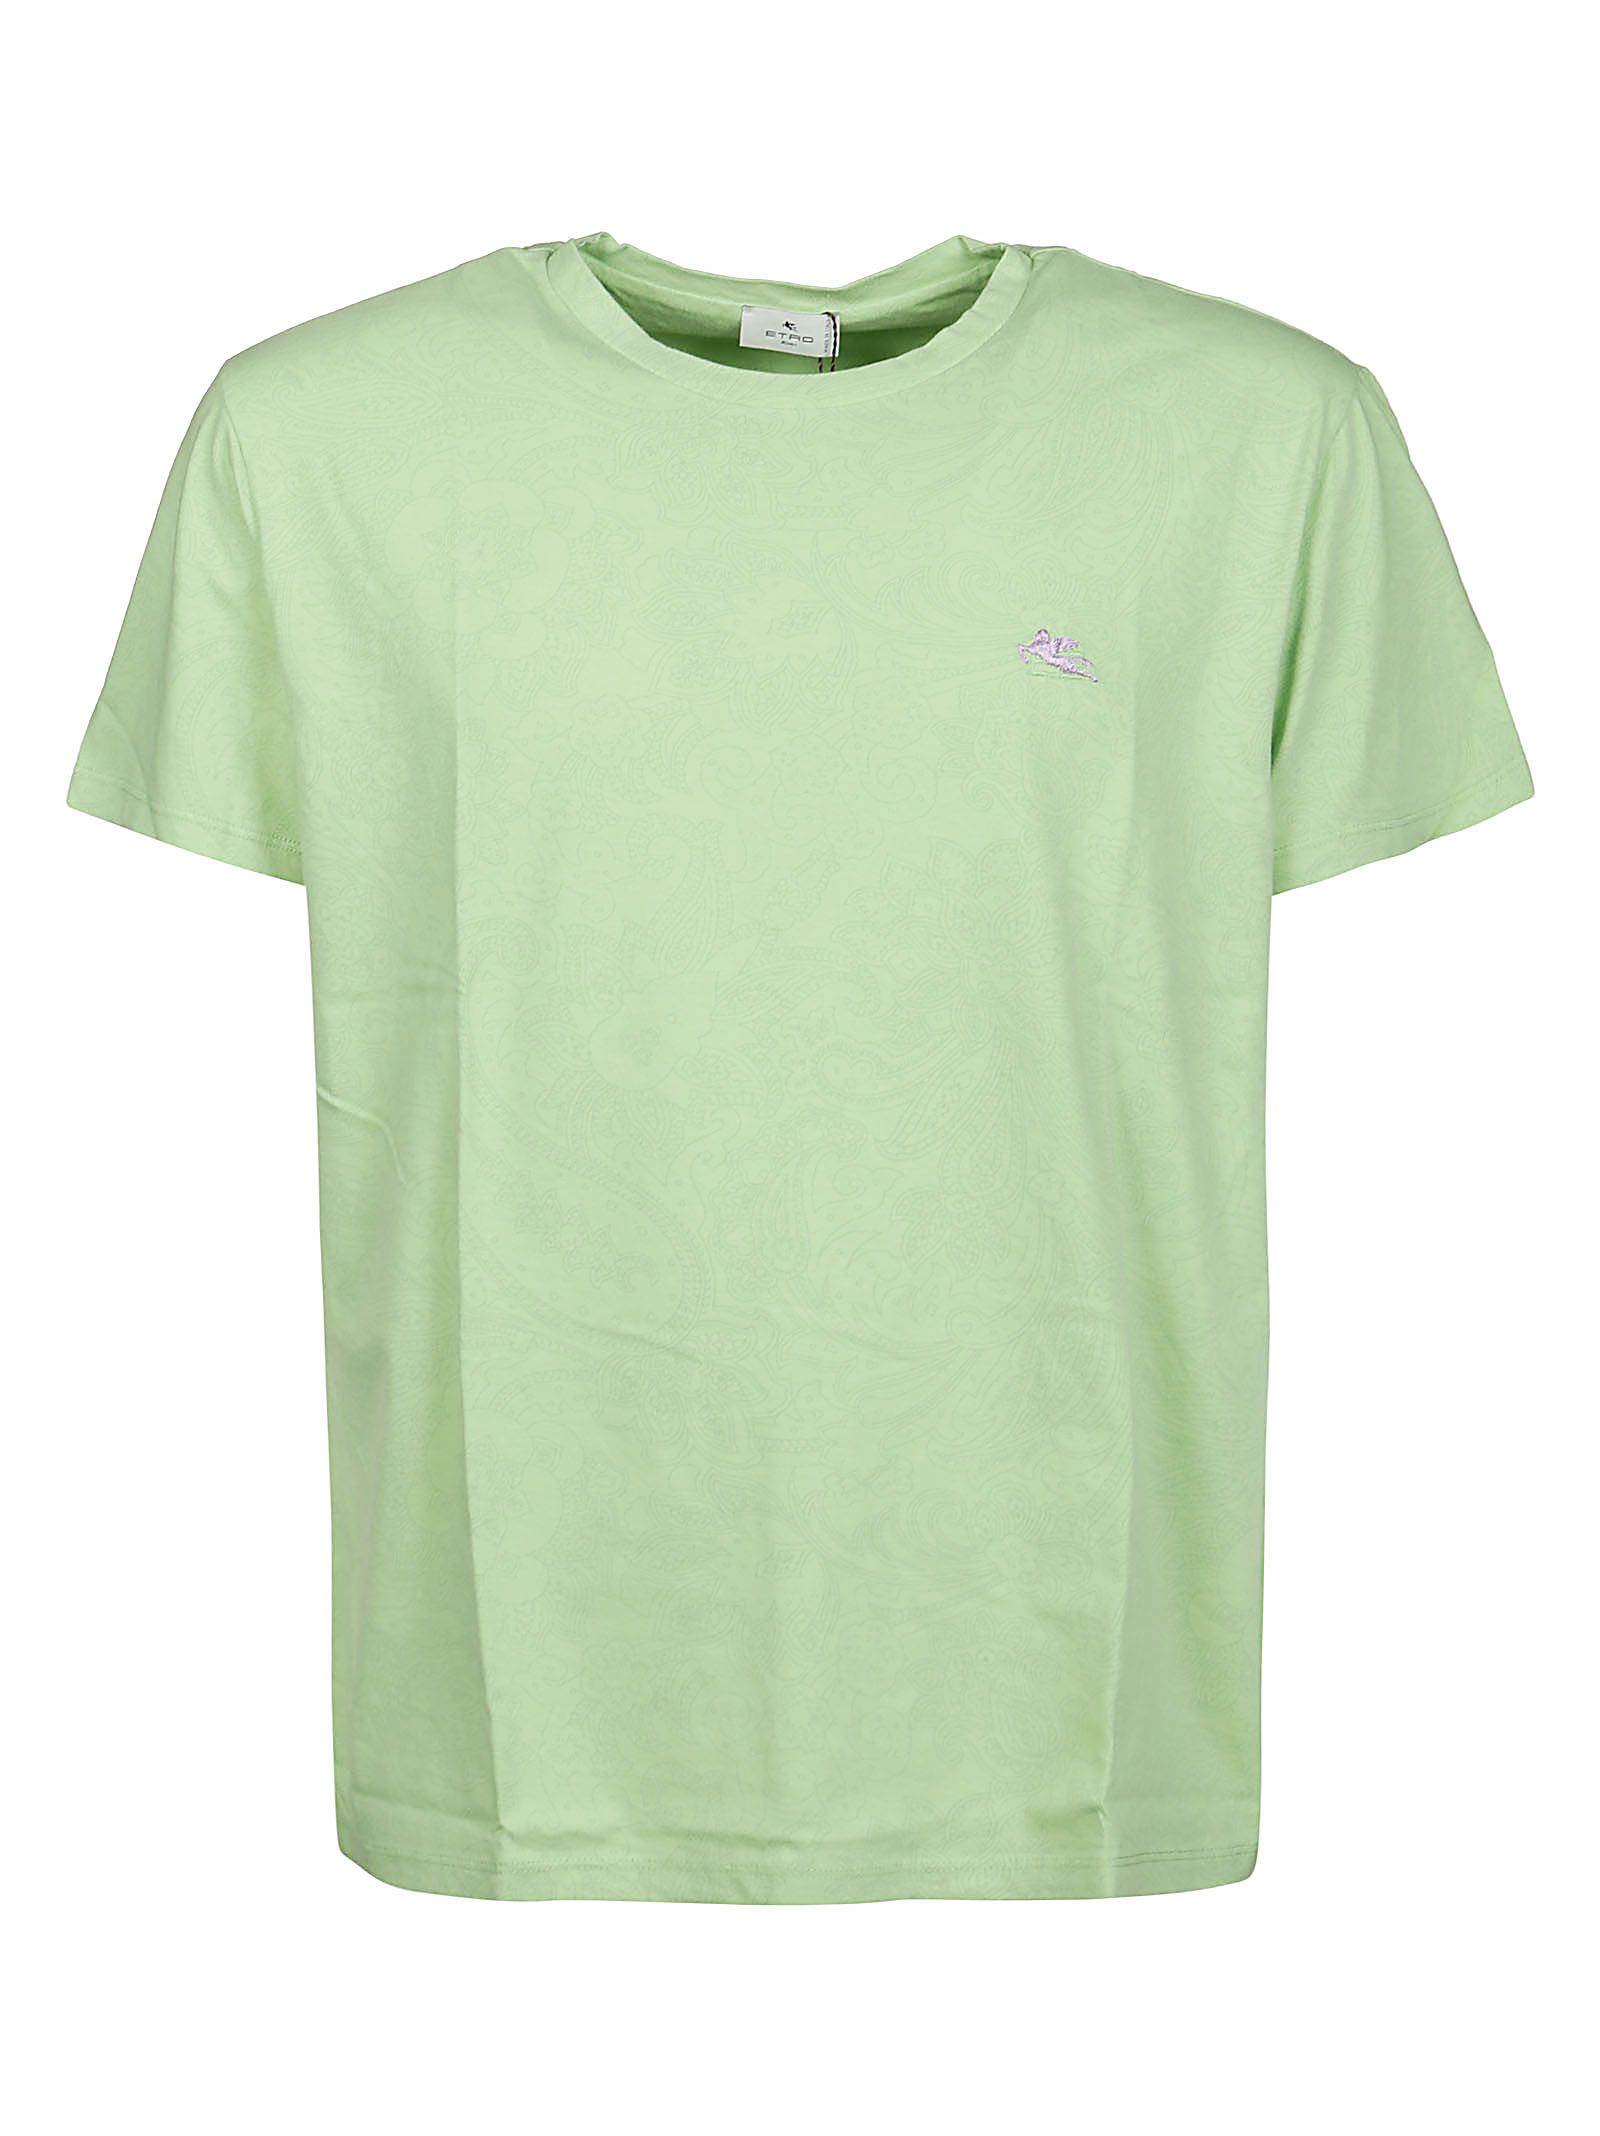 Etro Cottons ETRO MEN'S 1Y02099800501 GREEN OTHER MATERIALS T-SHIRT